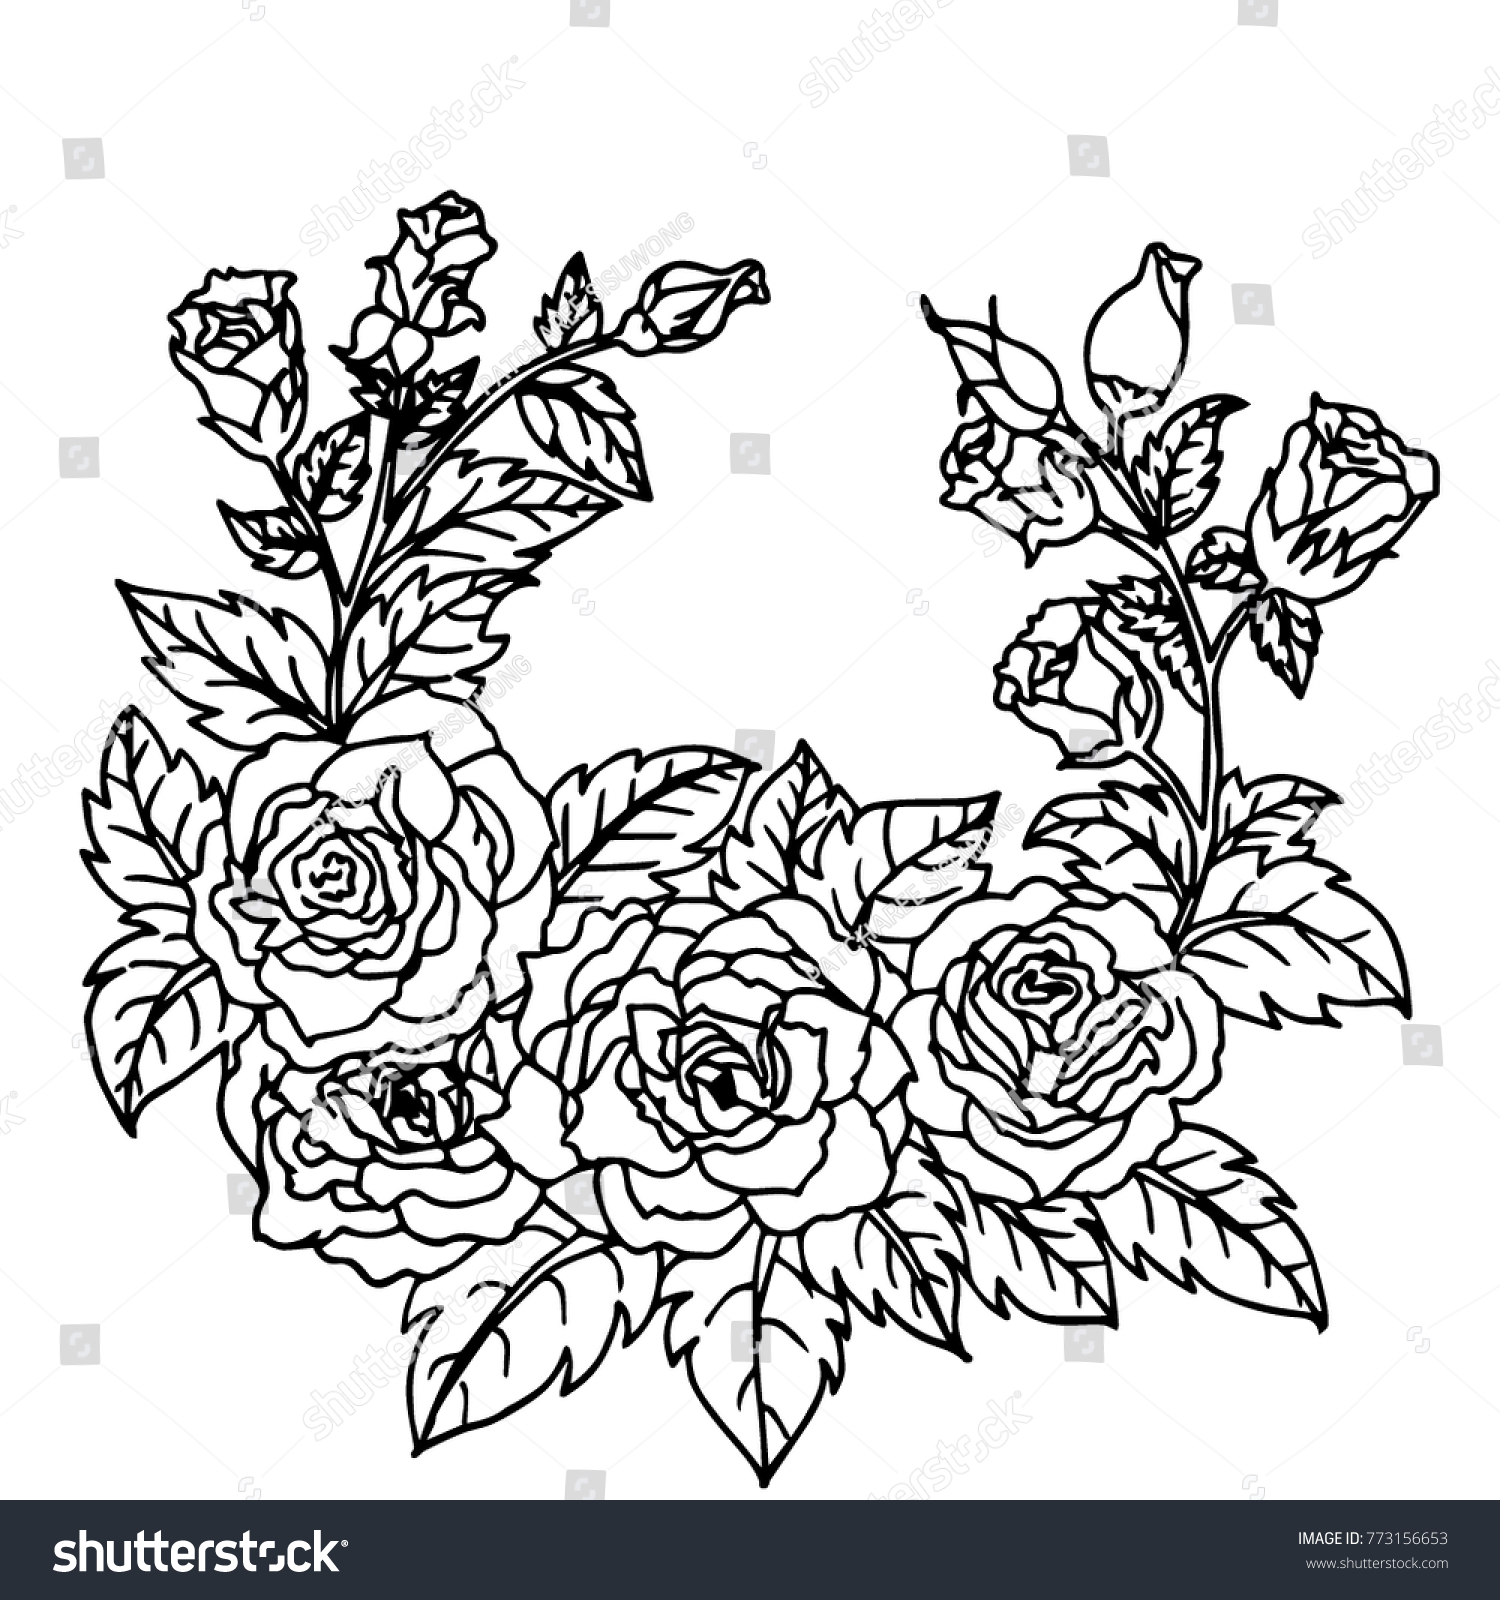 Beautiful flowers greeting card design wedding stock vector royalty beautiful flowers for greeting card design and wedding invitations birthdays valentines day mothers izmirmasajfo